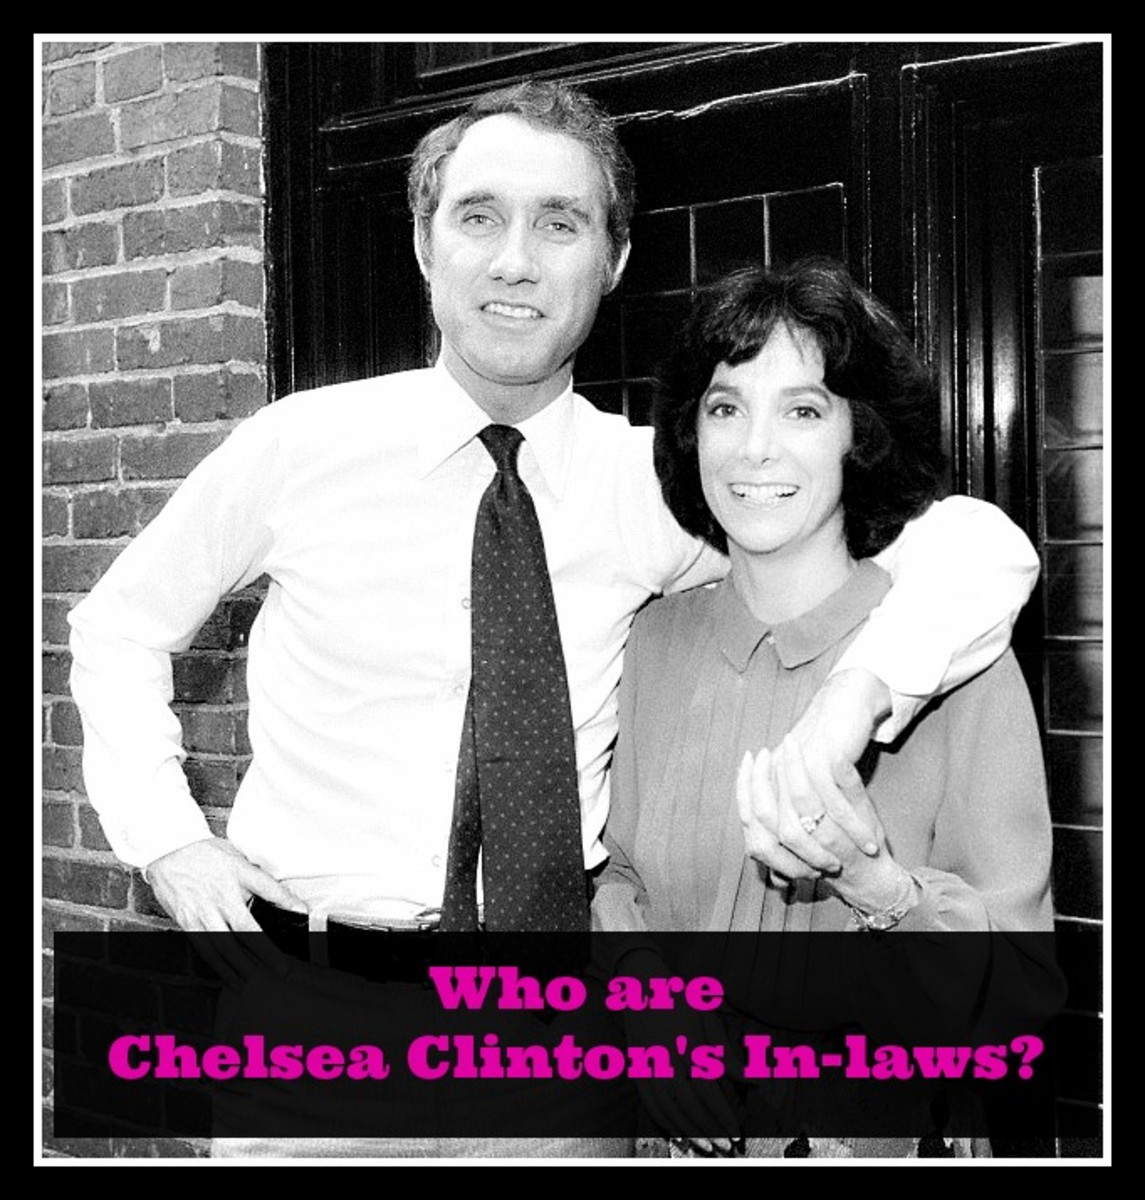 Who are Chelsea Clinton's In-laws, Ed Mezvinsky and Marjorie Margolies?